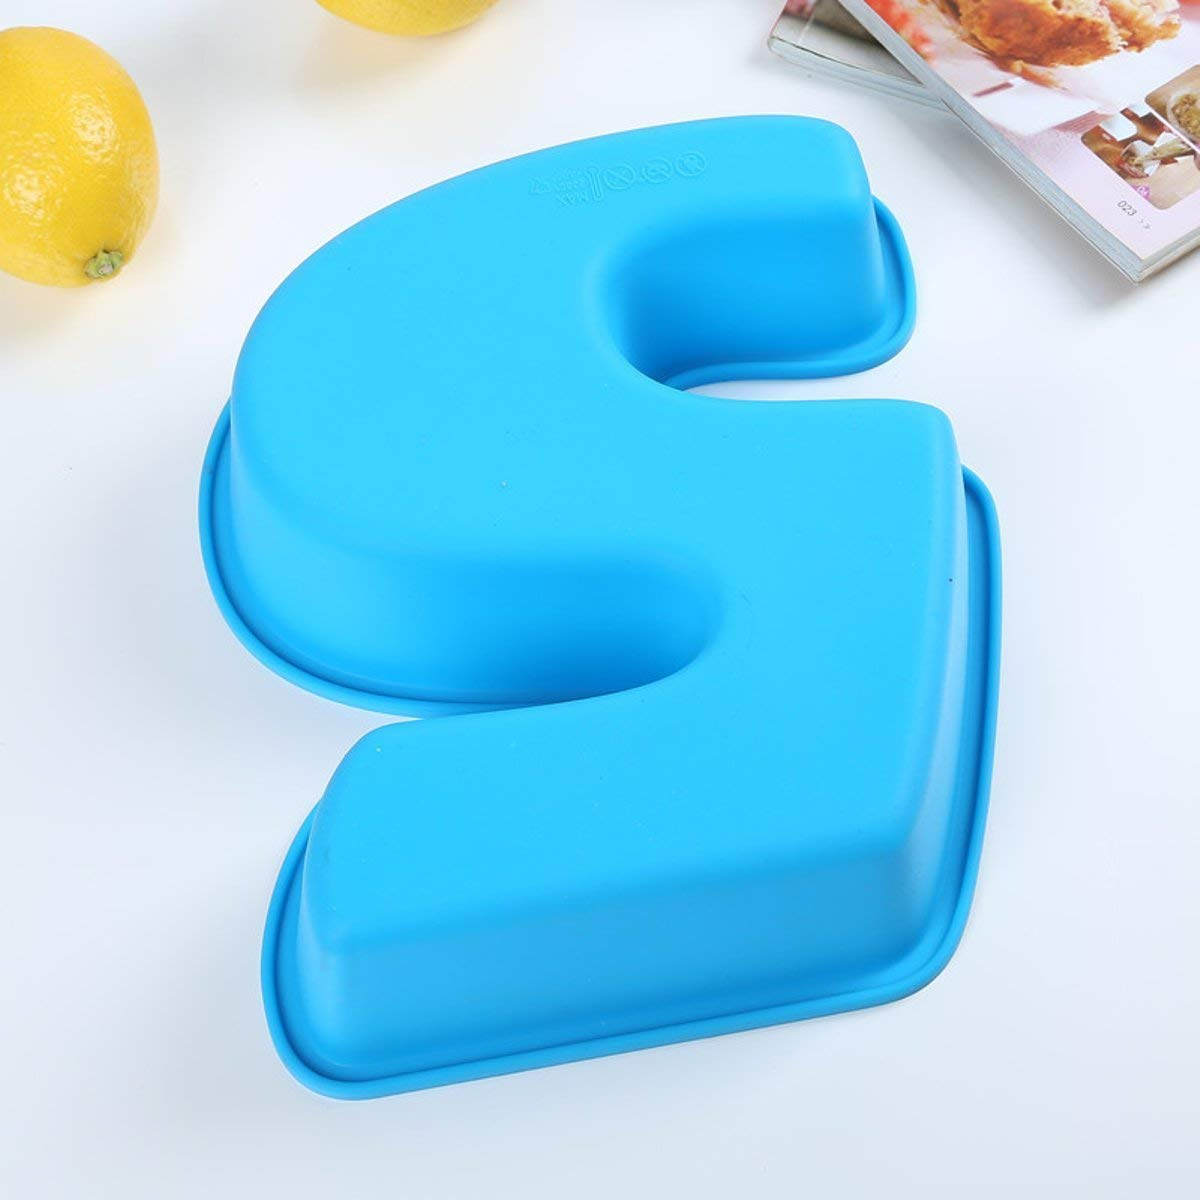 100% food grade Large Silicone Number 5 Cake Mould Pan Baking Tin Birthday Anniversary 5th